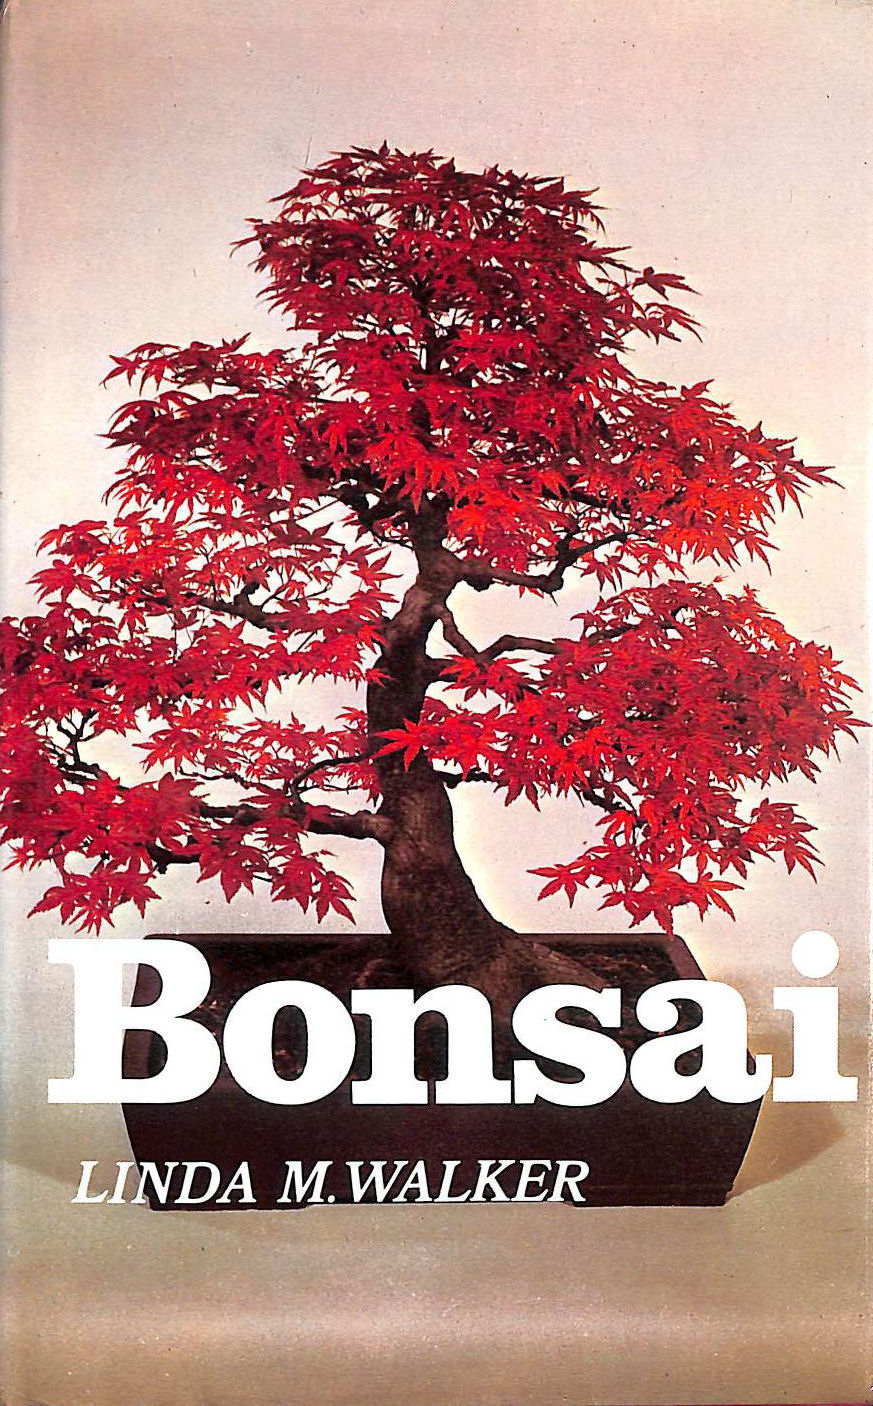 WALKER, LINDA M. - Bonsai